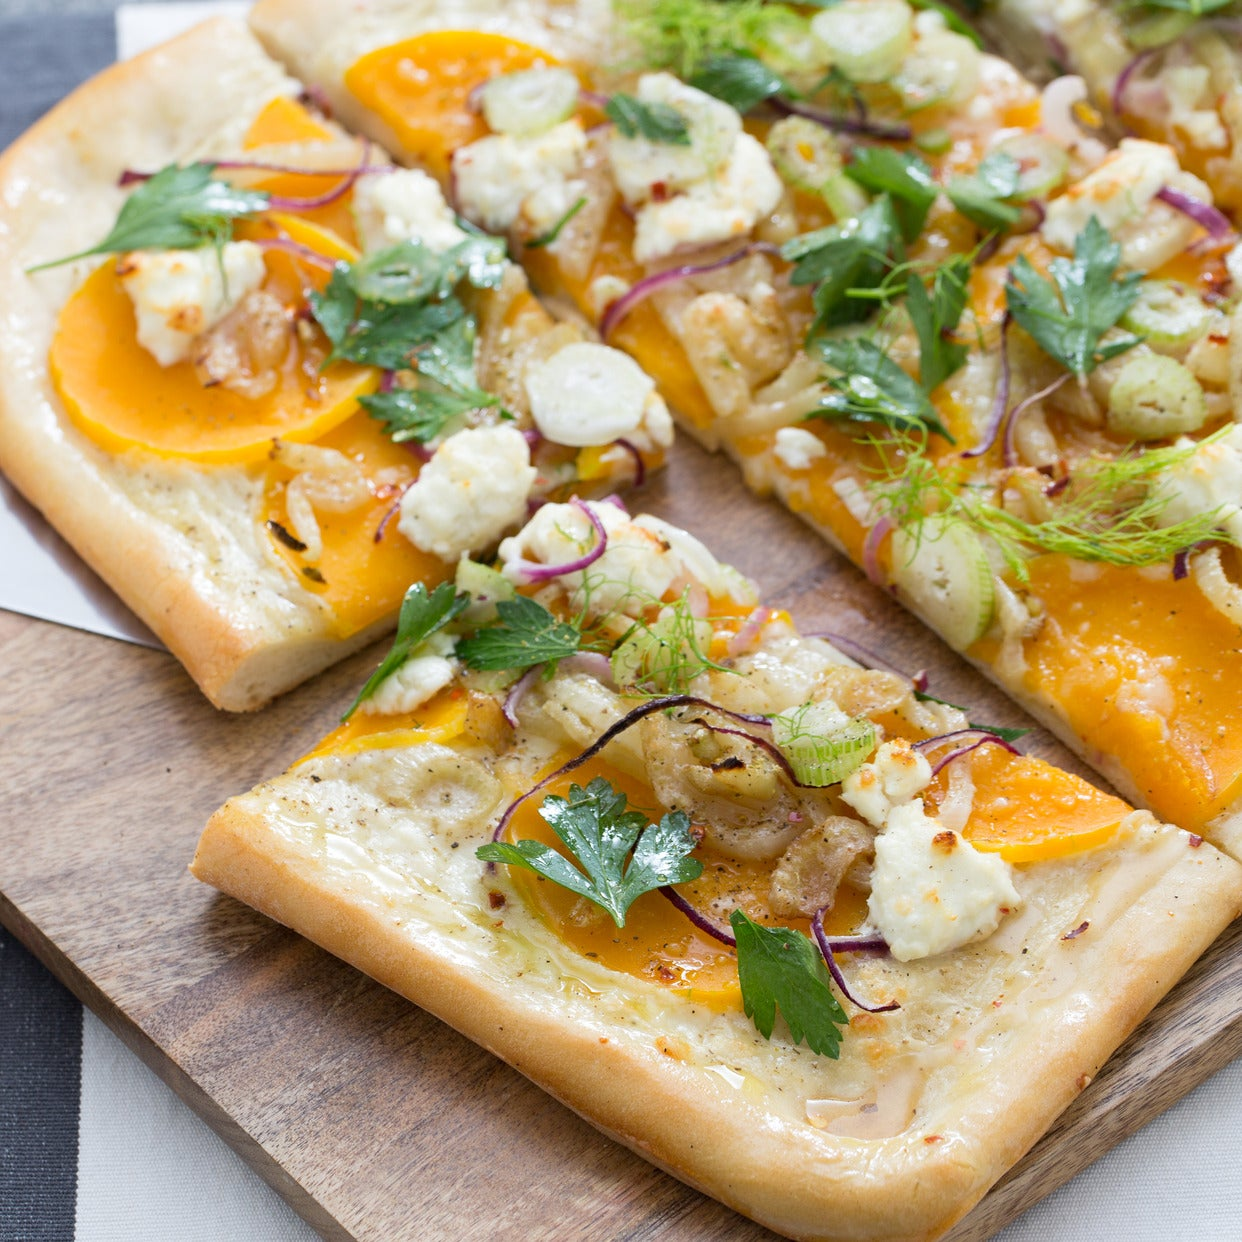 Butternut Squash & Goat Cheese Pizza with Creamy Béchamel Sauce & Caramelized Fennel